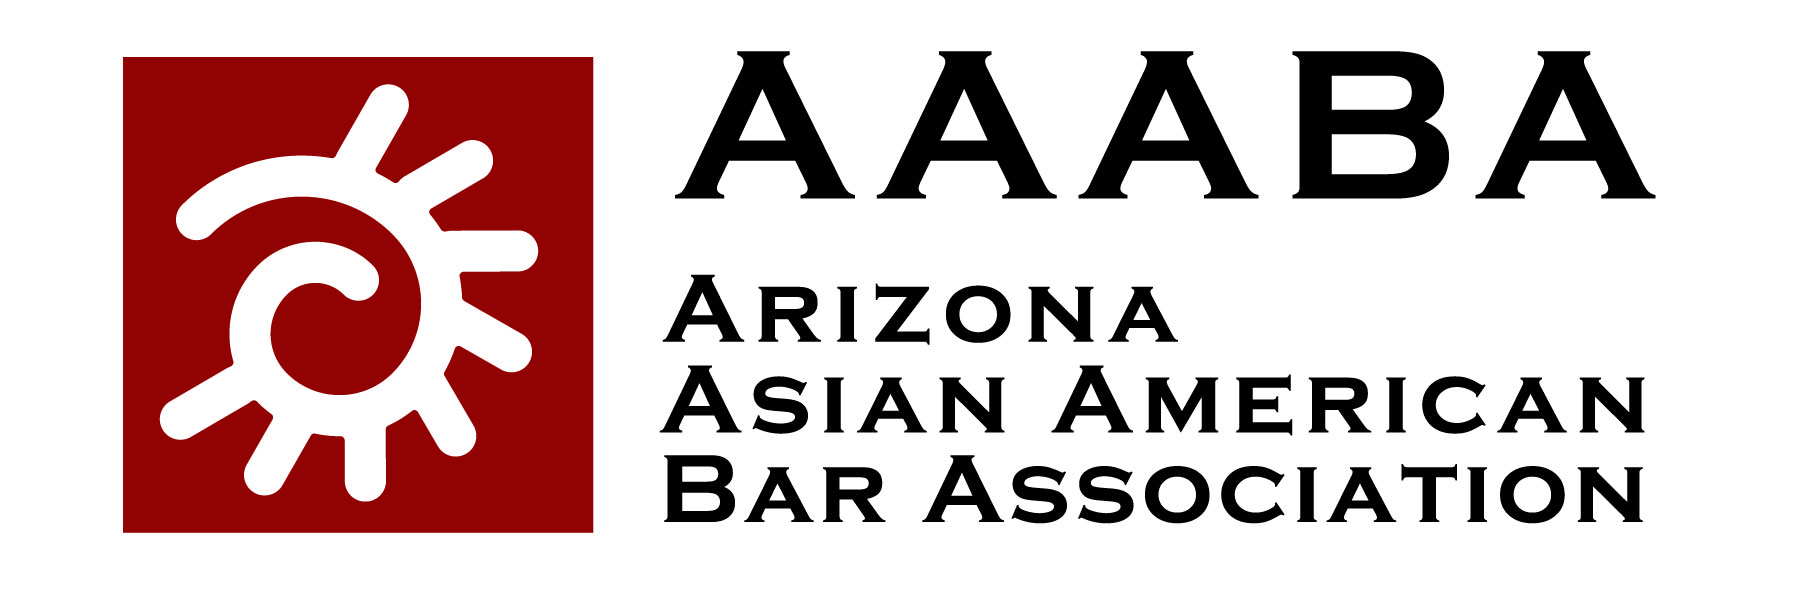 Arizona Asian American Bar Association 18, 19